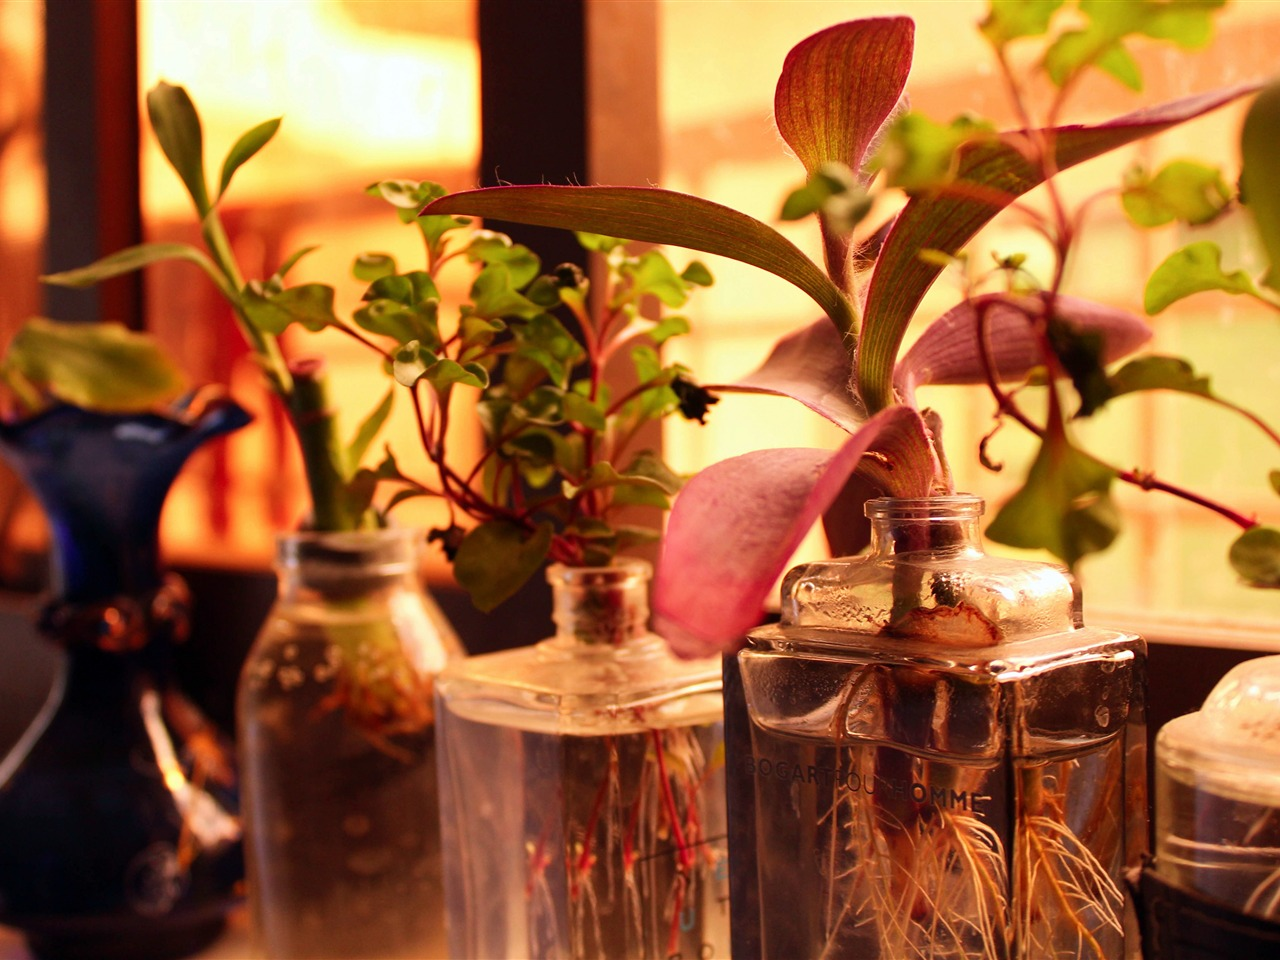 Window sill glass bottle plant close-up - 1280x960 wallpaper download